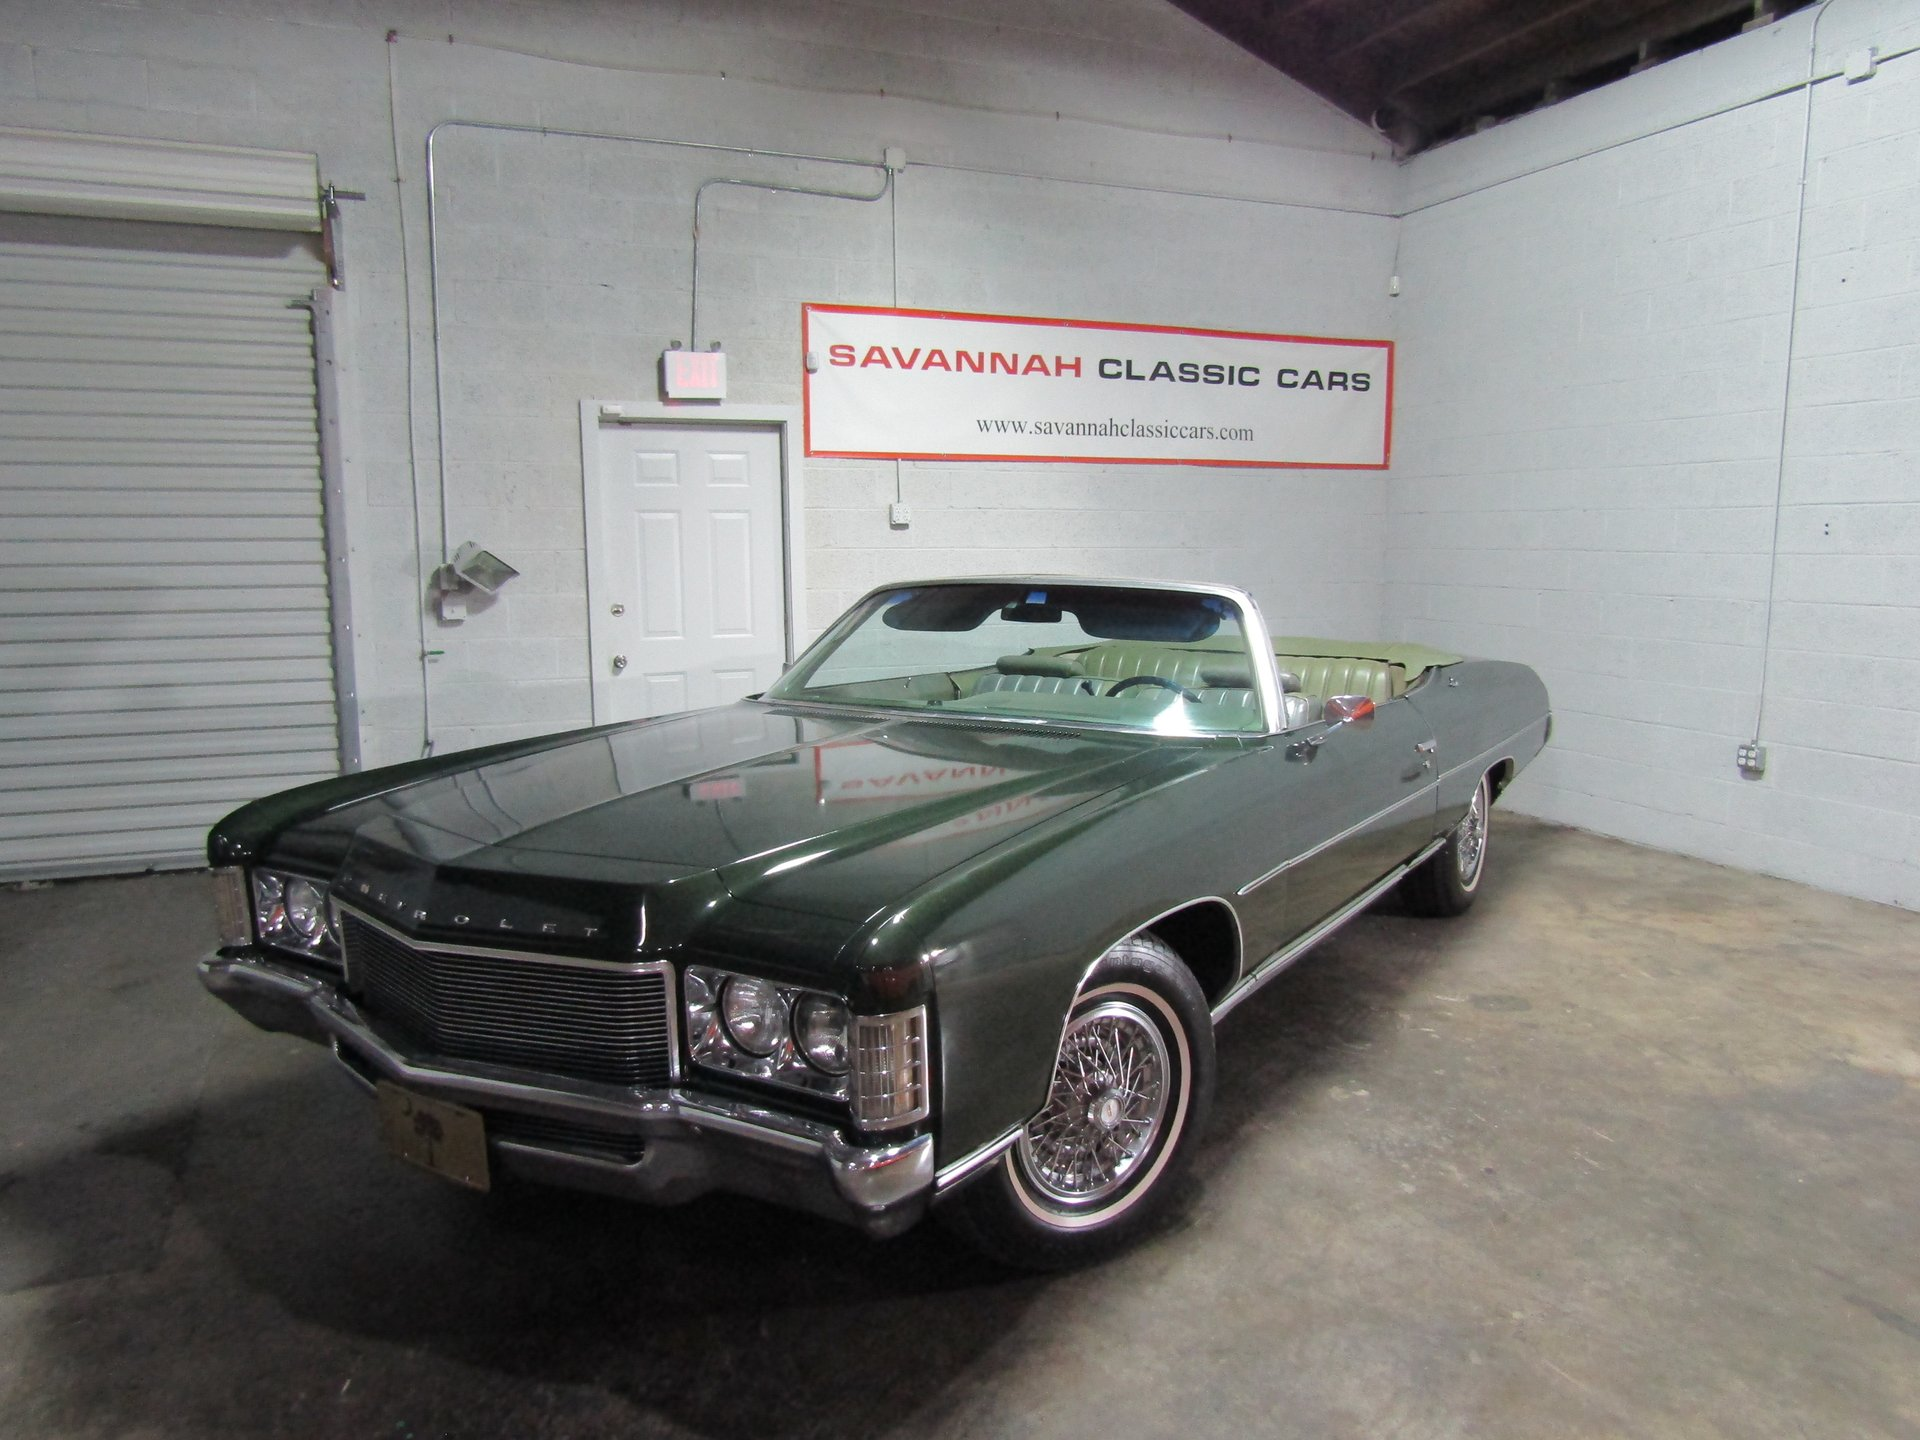 1971 Chevrolet Impala Savannah Classic Cars